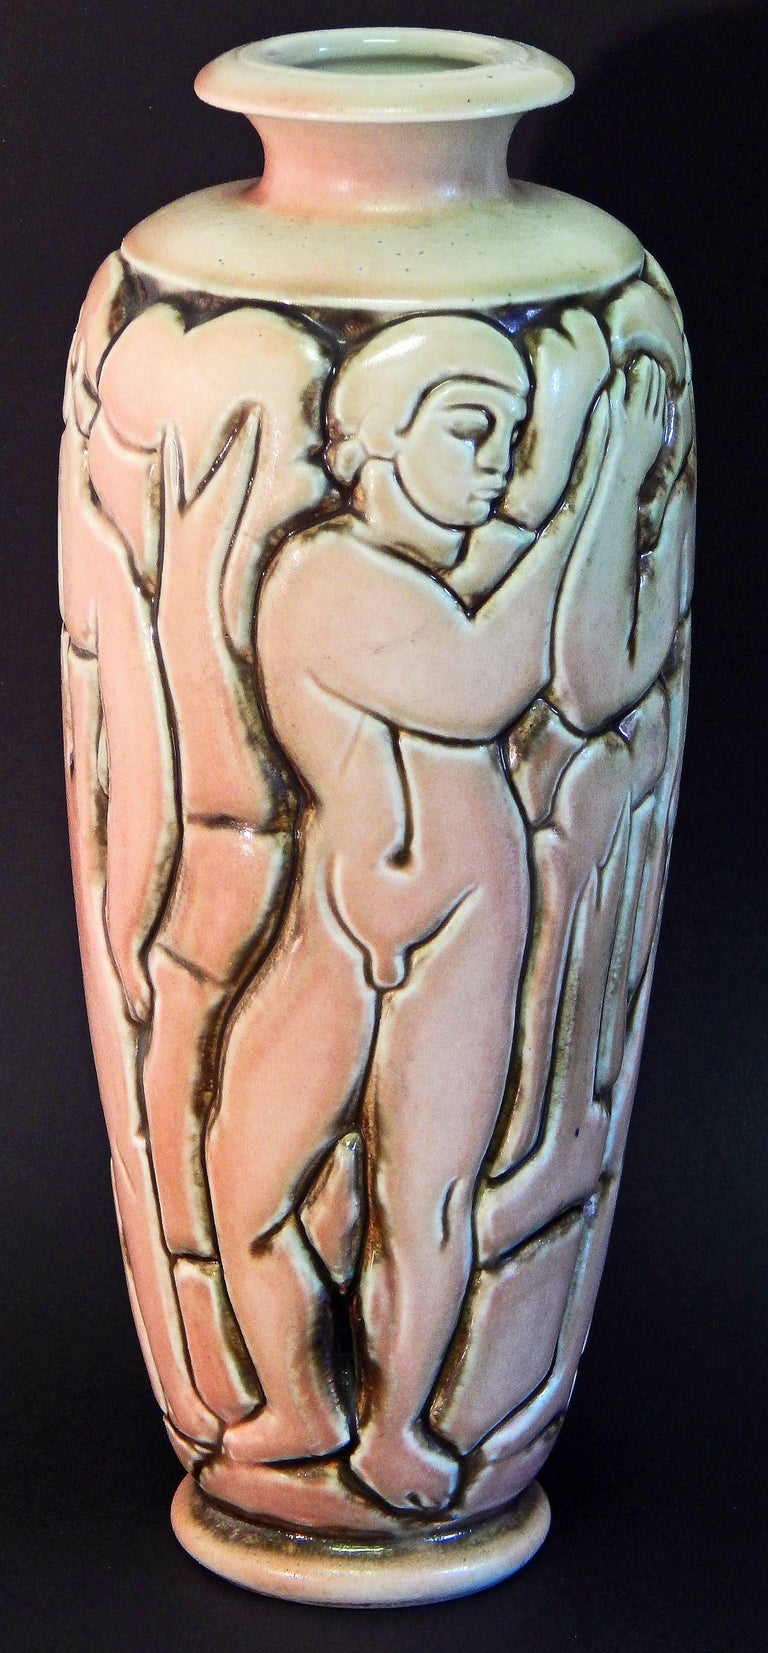 One of the most striking -- and rare -- vases ever produced by the Mougin ceramics firm in France, this vase ringed by four nude male figures clasping hands was sculpted by Gaston Goor. The artist was famous for illustrating a number of books by